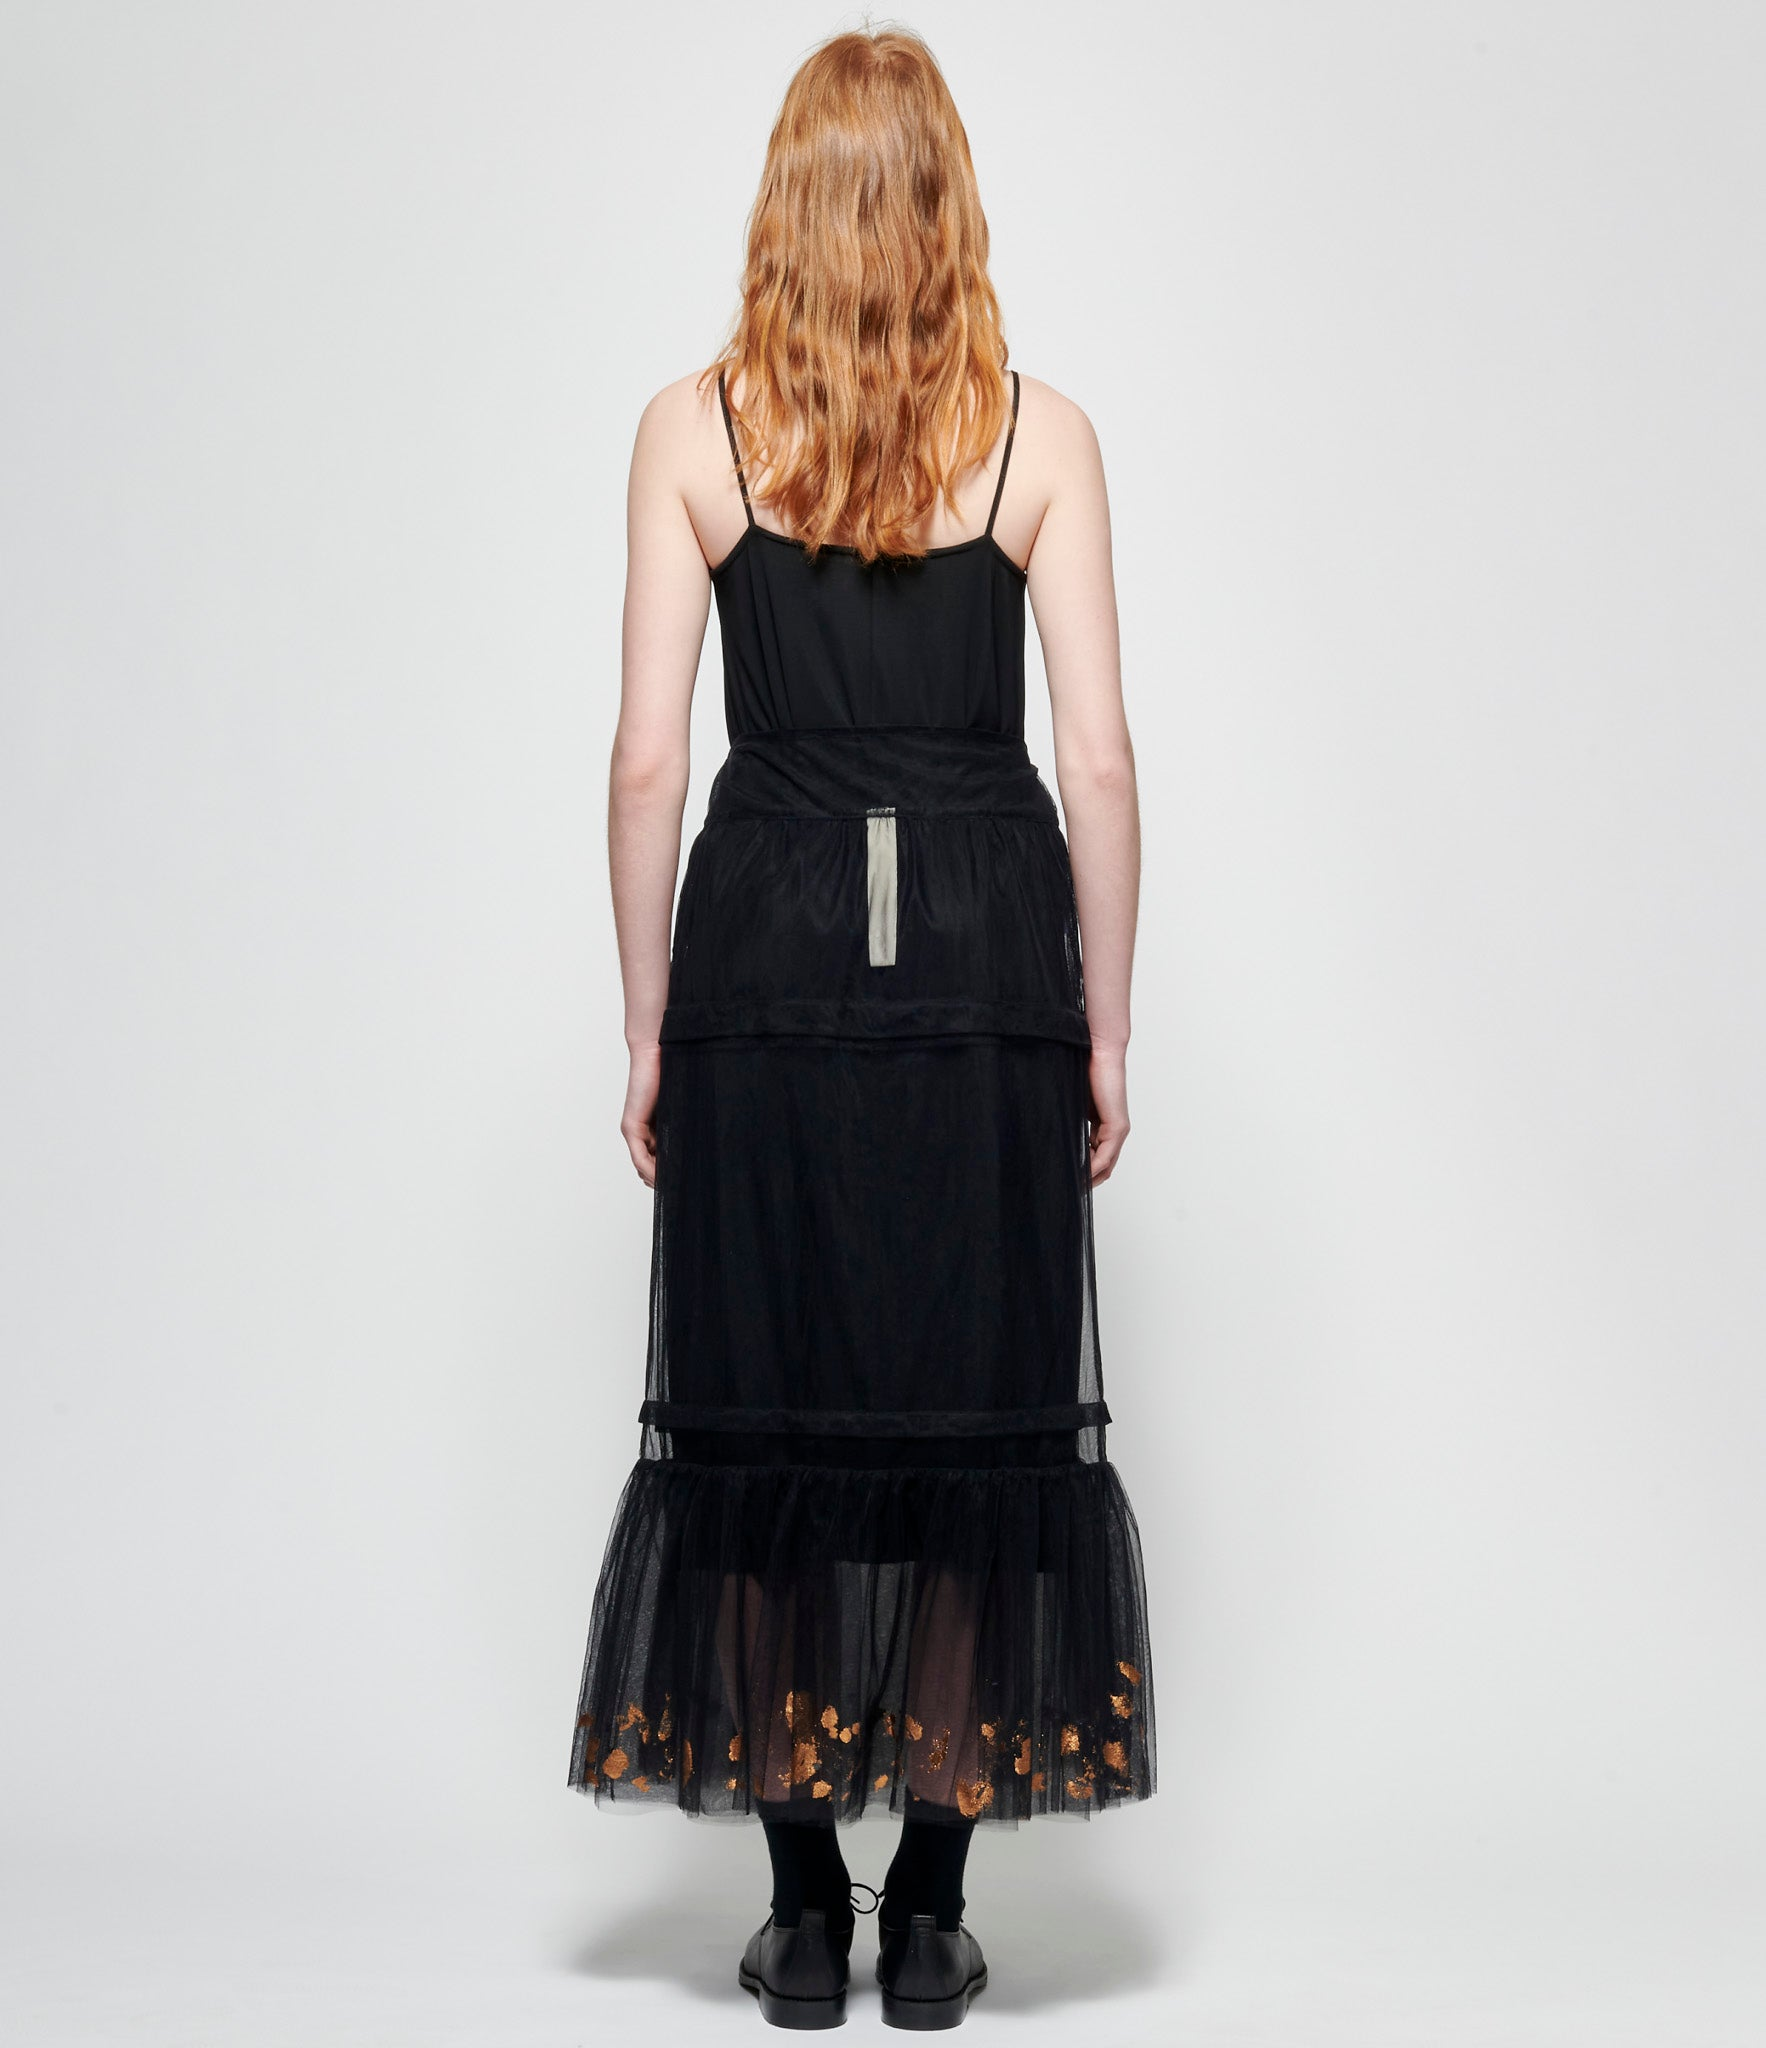 Replika Hand Painted Bronze Black Polyester Tulle Skirt